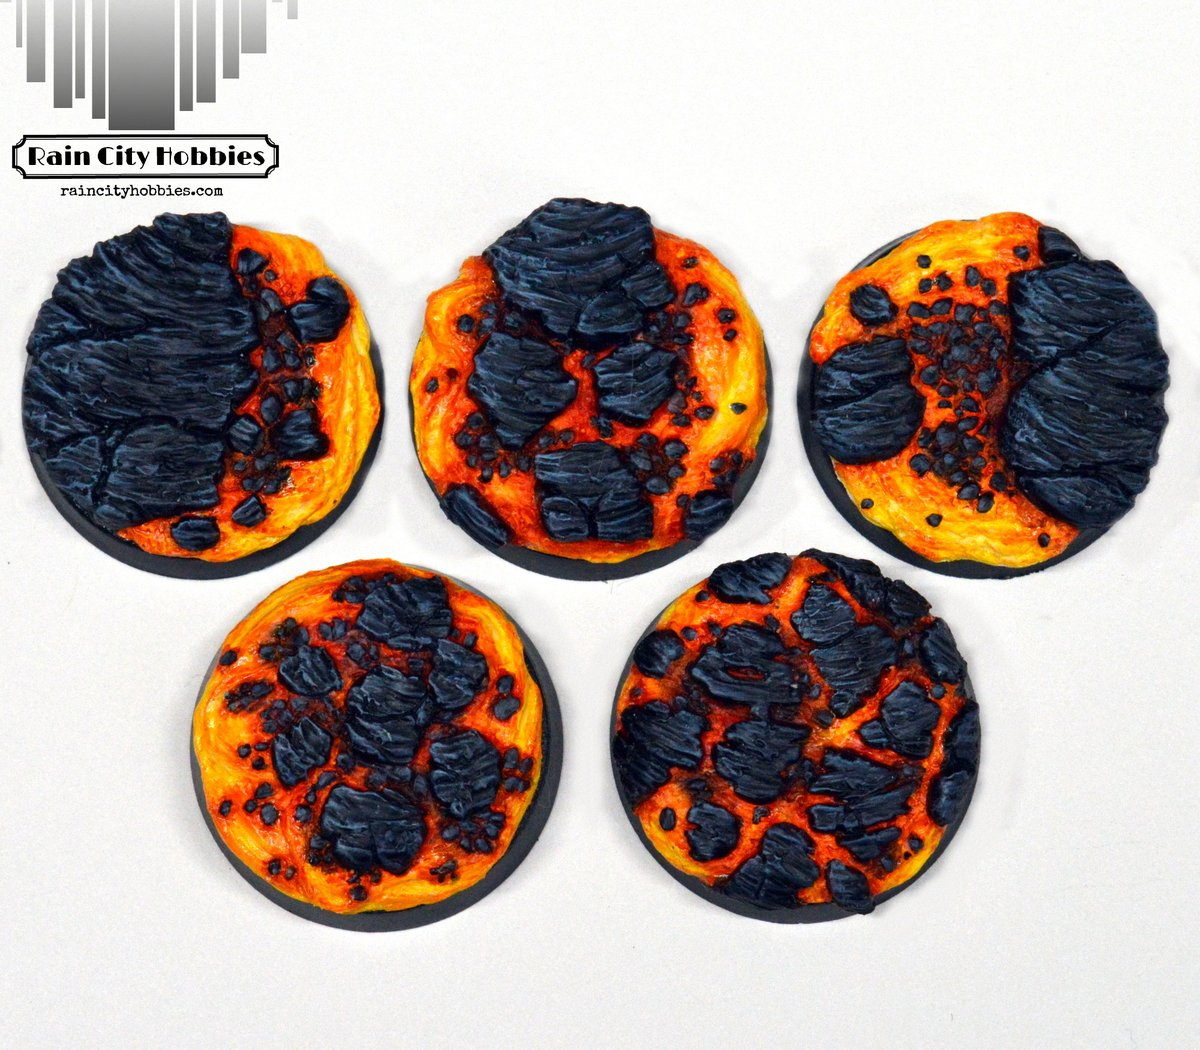 New lava bases! They come in 25, 32, 40 and 50mm sizes! These are base toppers that are just glued on top of straight sided bases (AOS,40k) Only at https://t.co/lDmJRUwIWB  #minipainting #miniaturepainting #Warmongers #miniatures #Warhammer #40k #warhammer40k #wh40k #aos https://t.co/Tt1JU1RMxw